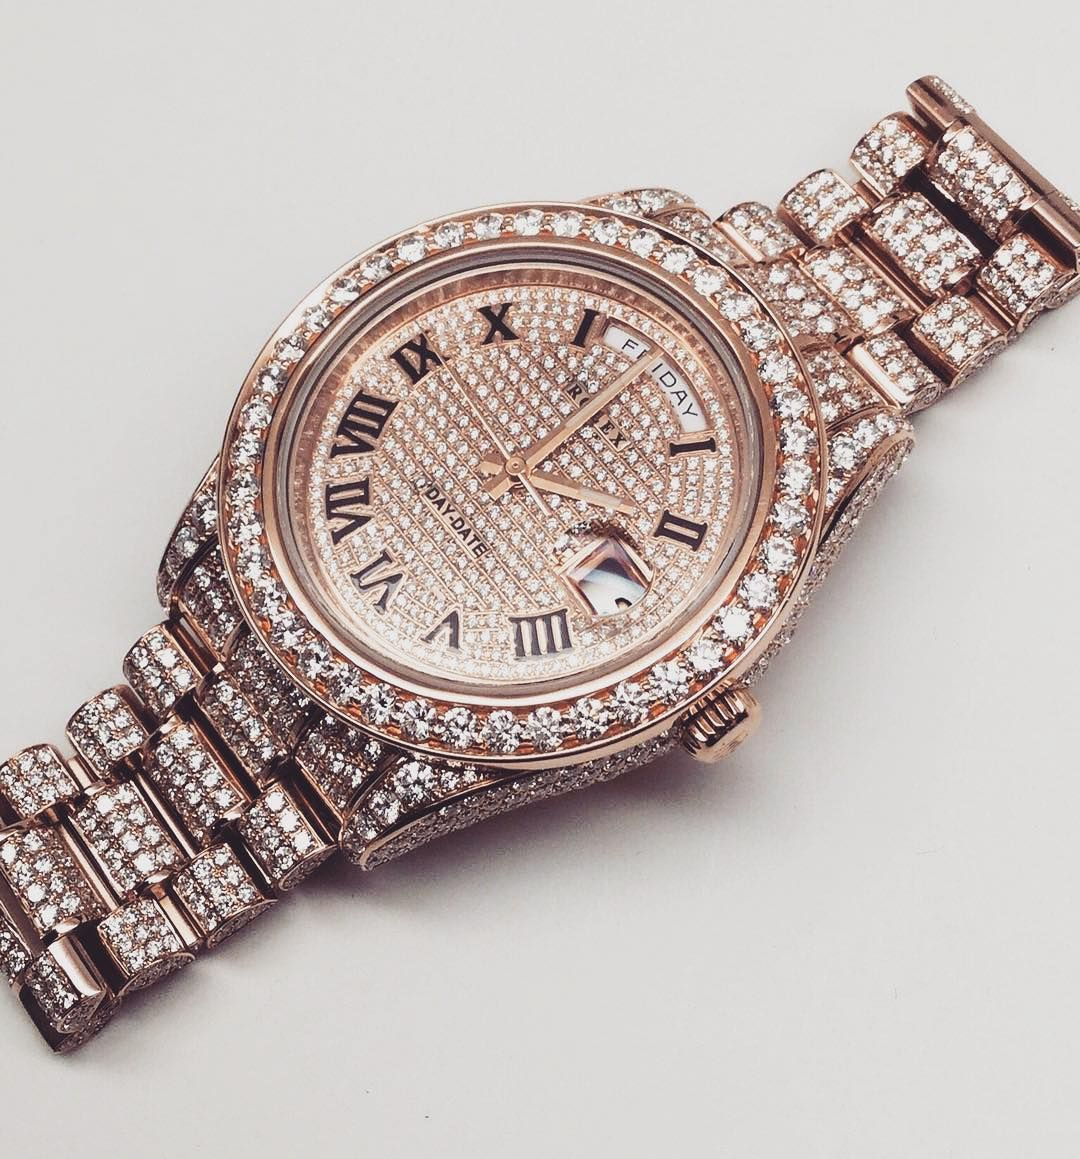 iced out 18k rose gold rolex daydate watch mens